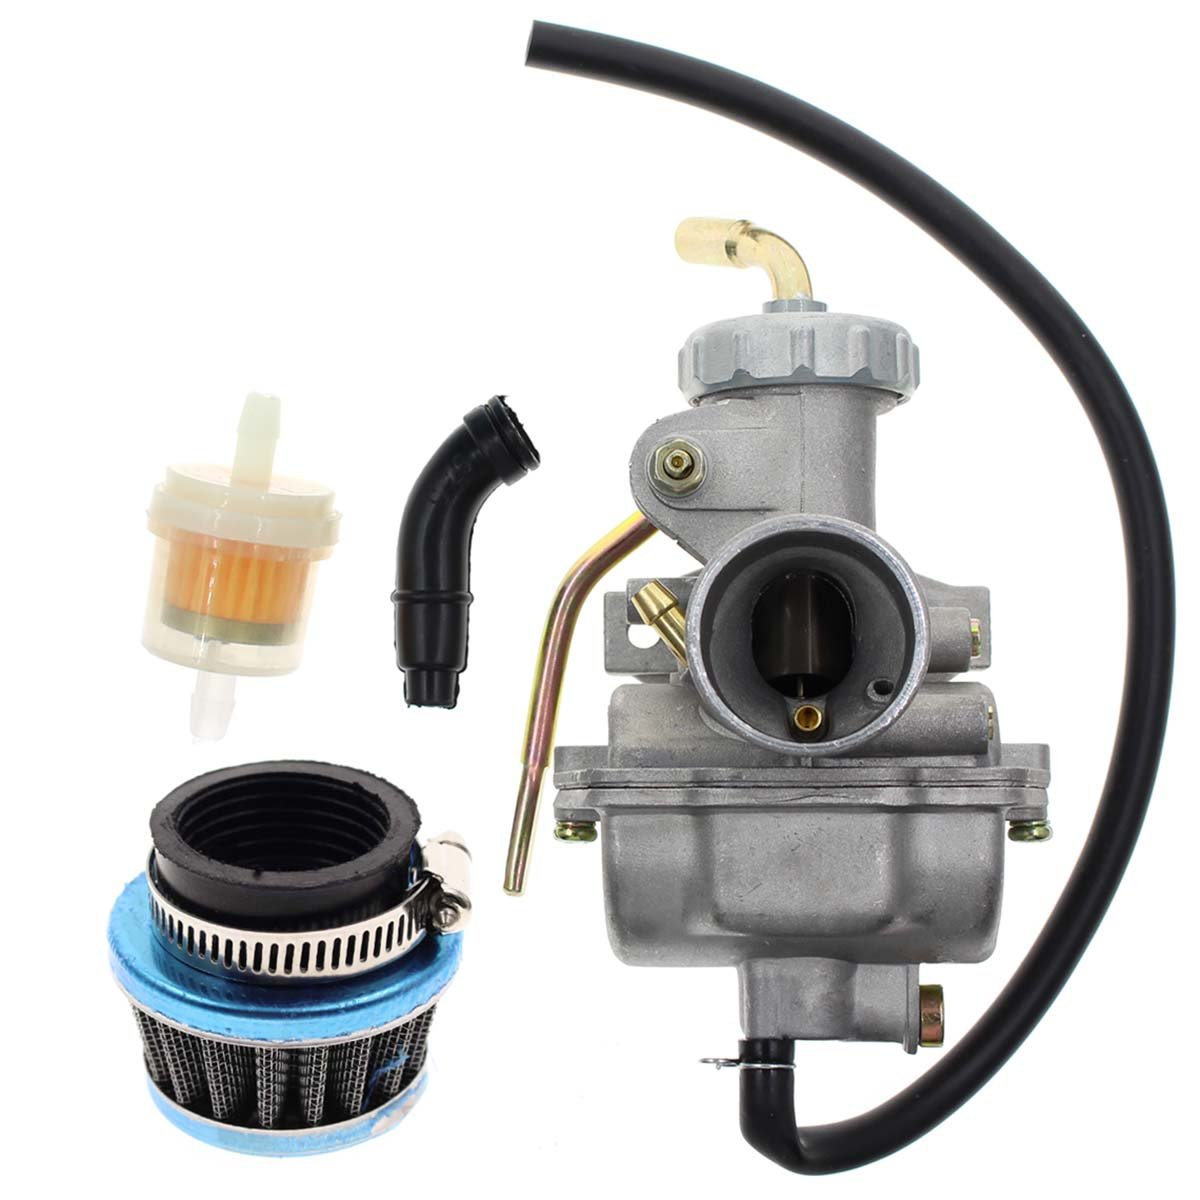 Amazon.com: Carbhub PZ20 Carburetor for Kazuma Baja 50cc 70cc 90cc 110cc  125cc TaoTao 110B NST SunL Chinese Quad 4 stroke ATV 4 wheeler Go kart Dirt  Bike ...